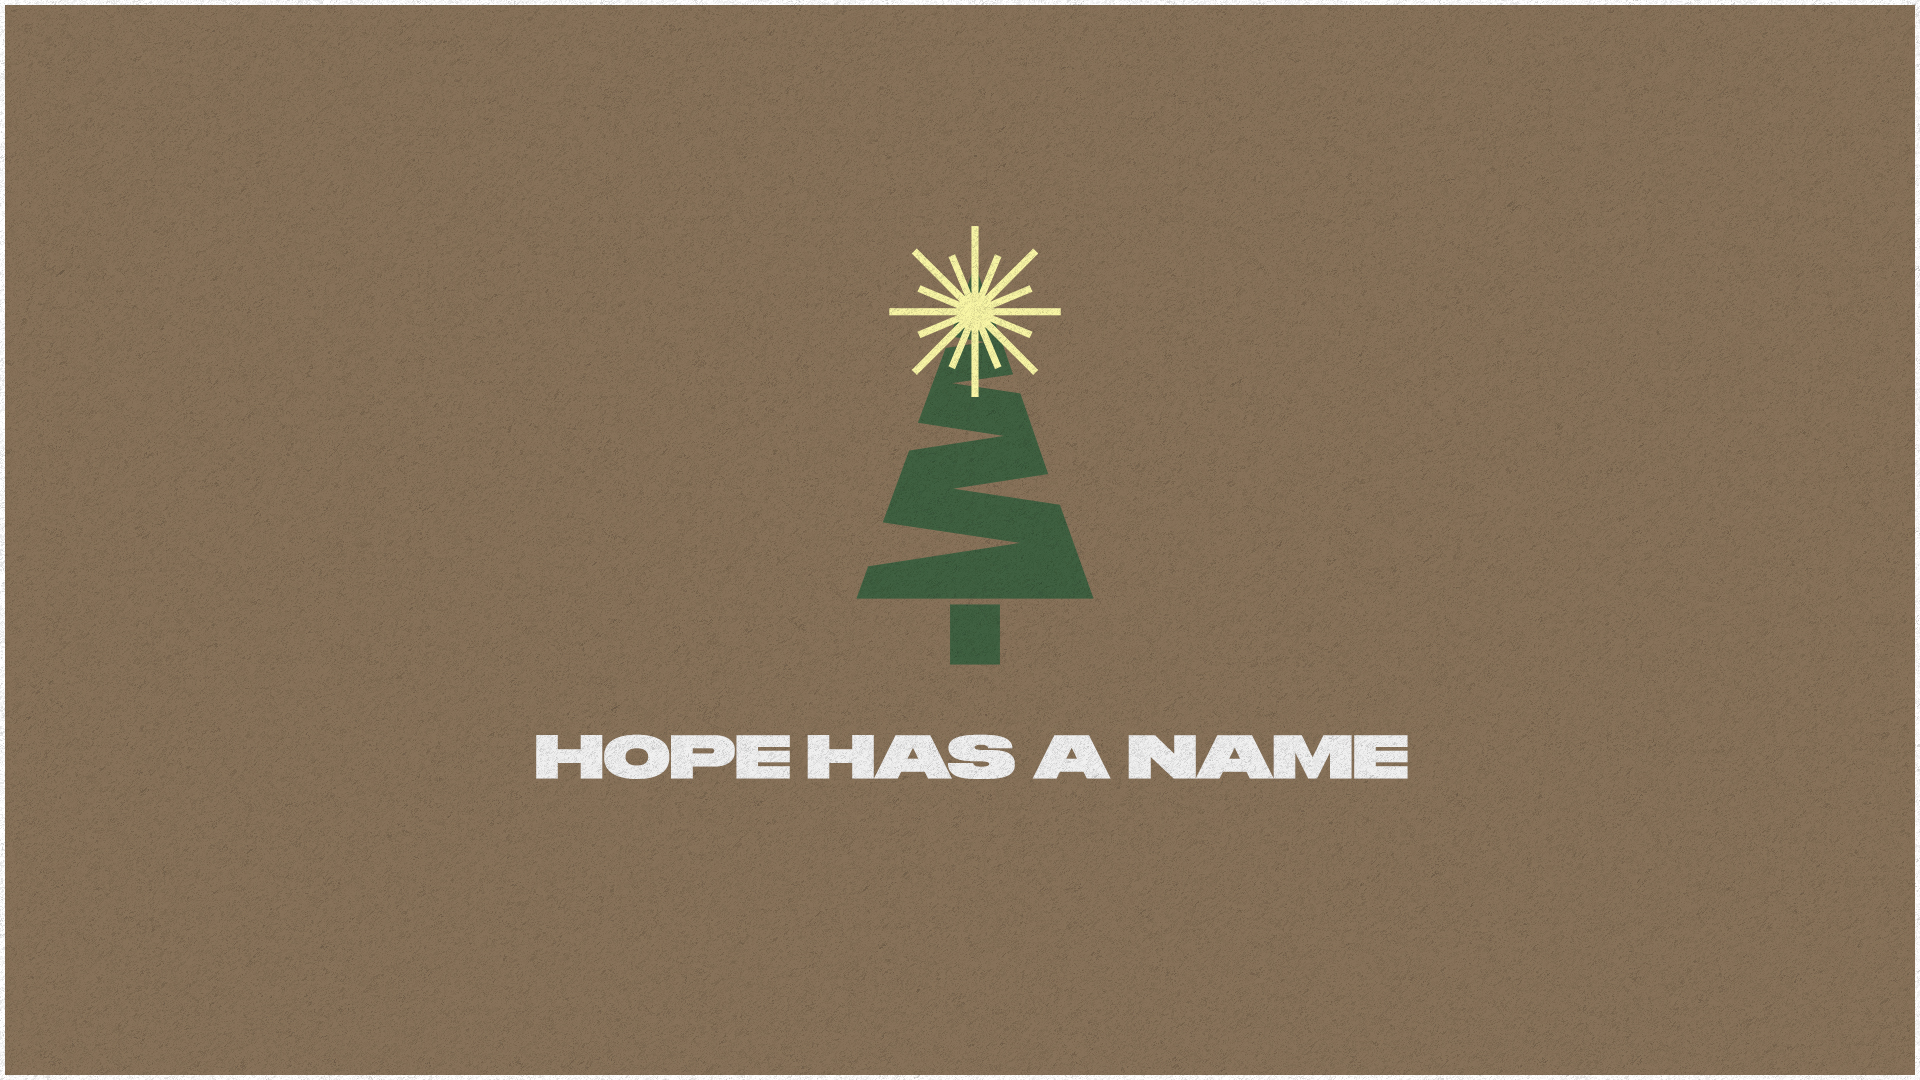 Hope Has a Name - Sunday 13th December 2020 - Guest Speakers